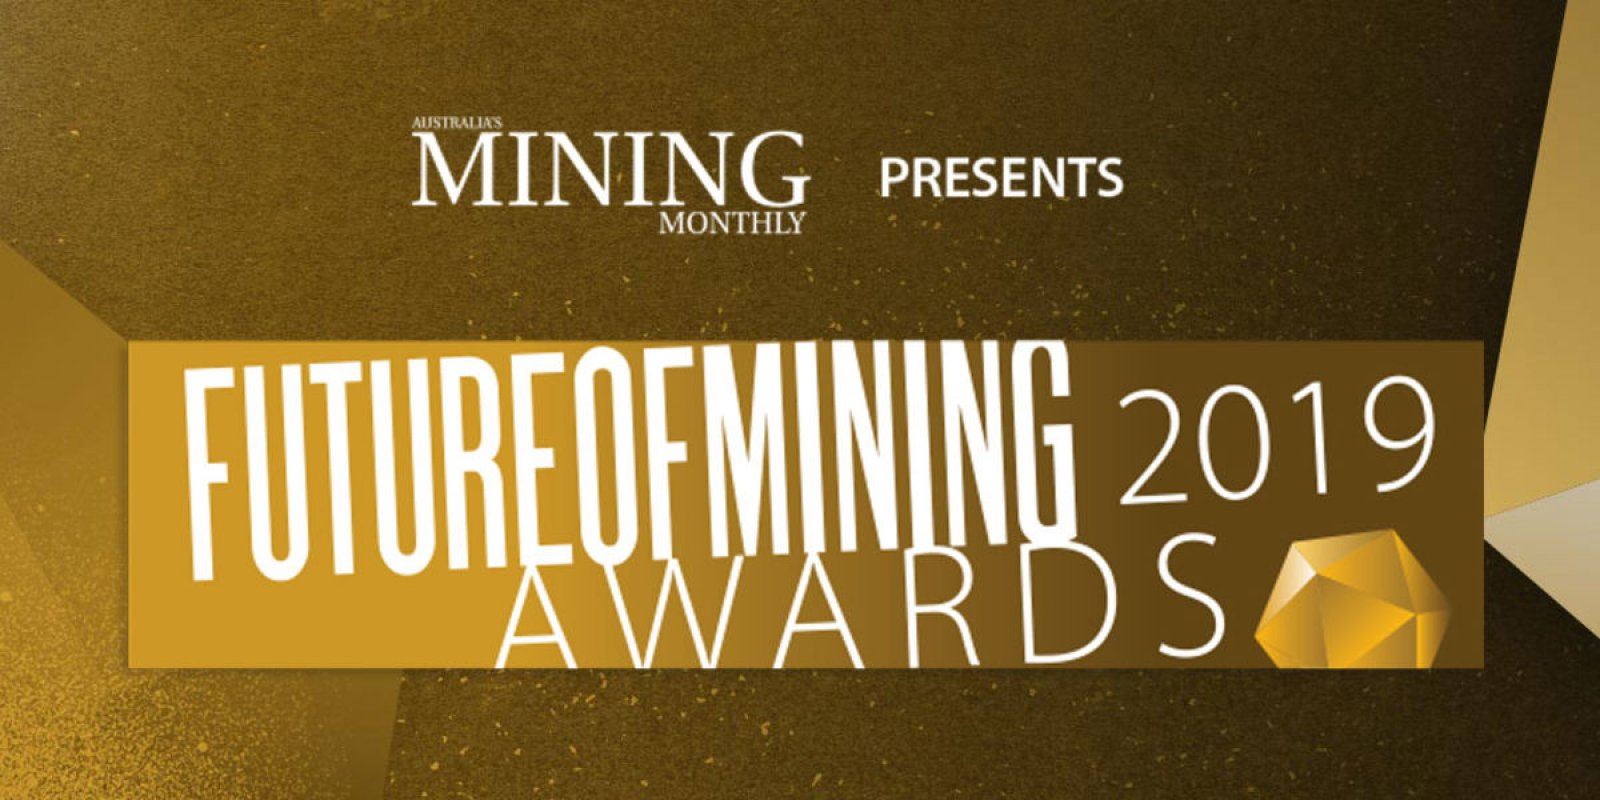 Australia's Mining Monthly Awards - finalists announced!